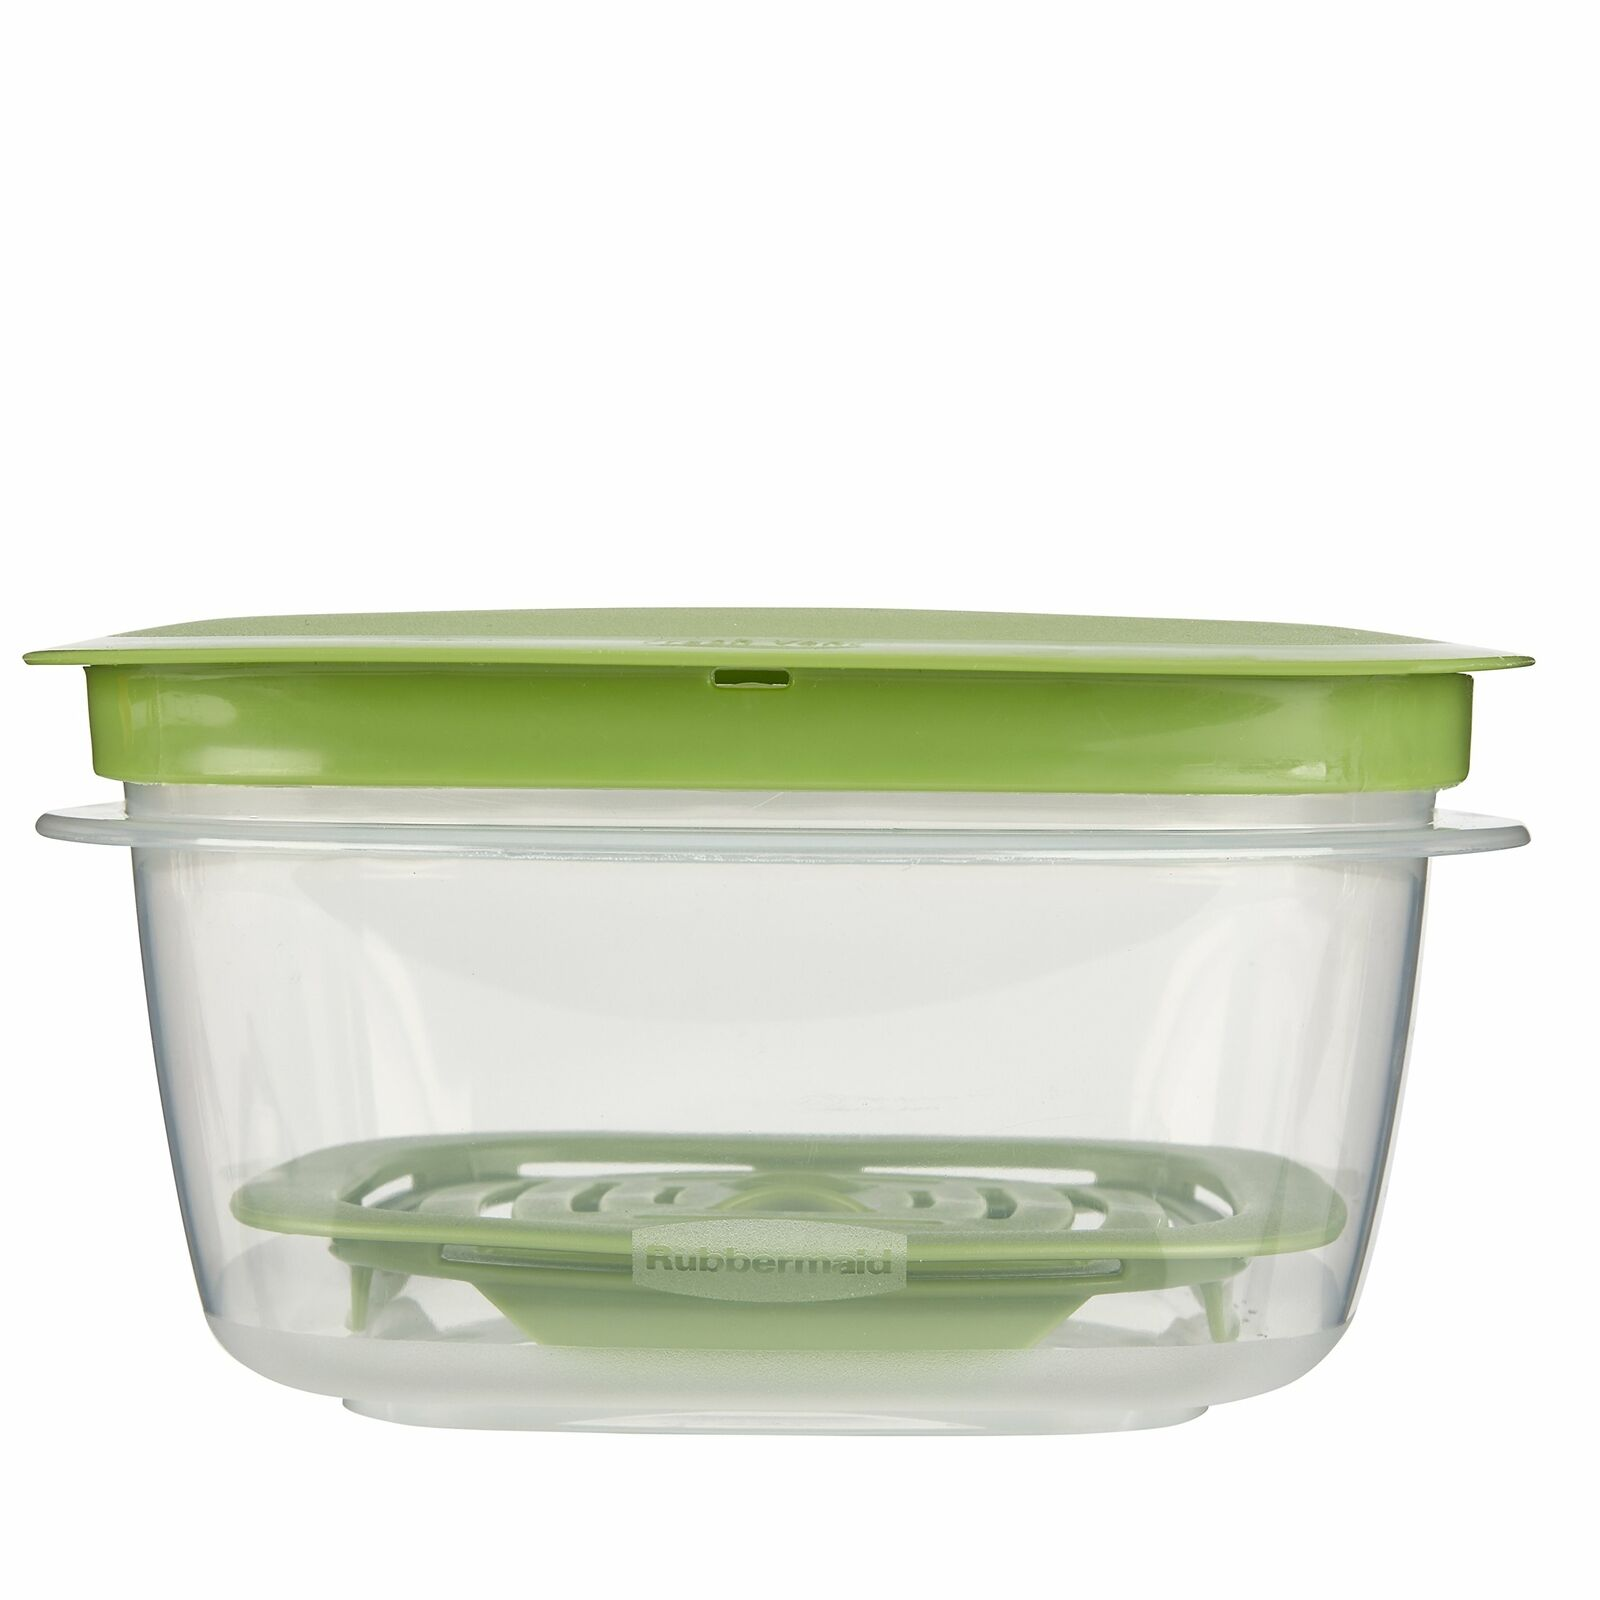 Rubbermaid Produce Saver Food Storage Container, 5 Cup 1776415 1